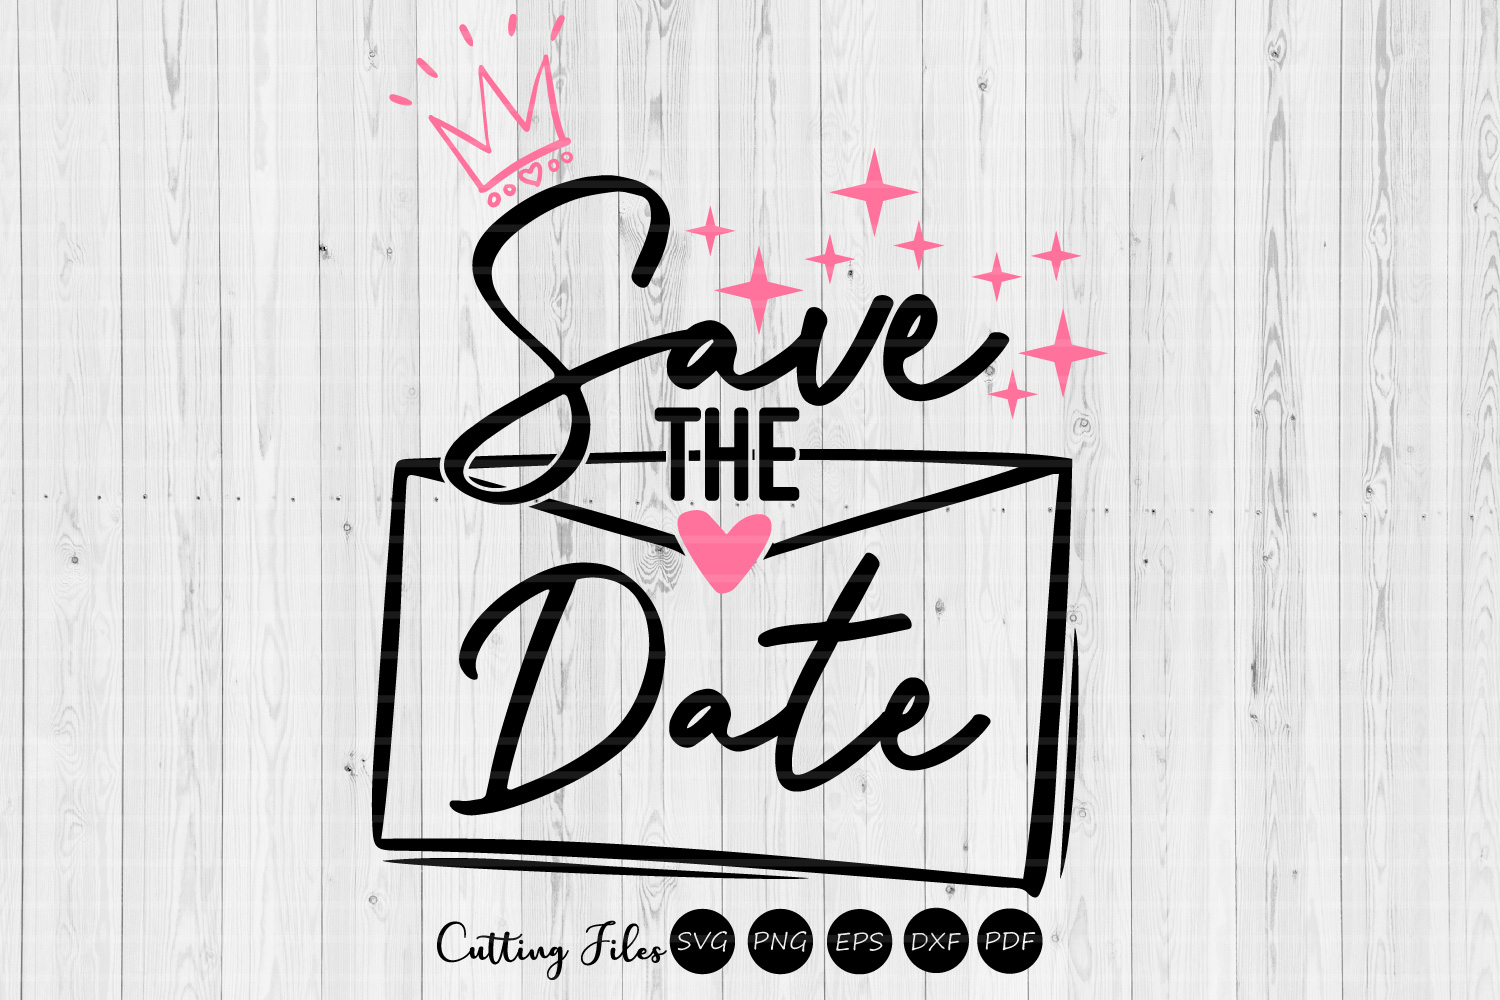 Download Free Save The Date Wedding Svg Graphic By Hd Art Workshop for Cricut Explore, Silhouette and other cutting machines.